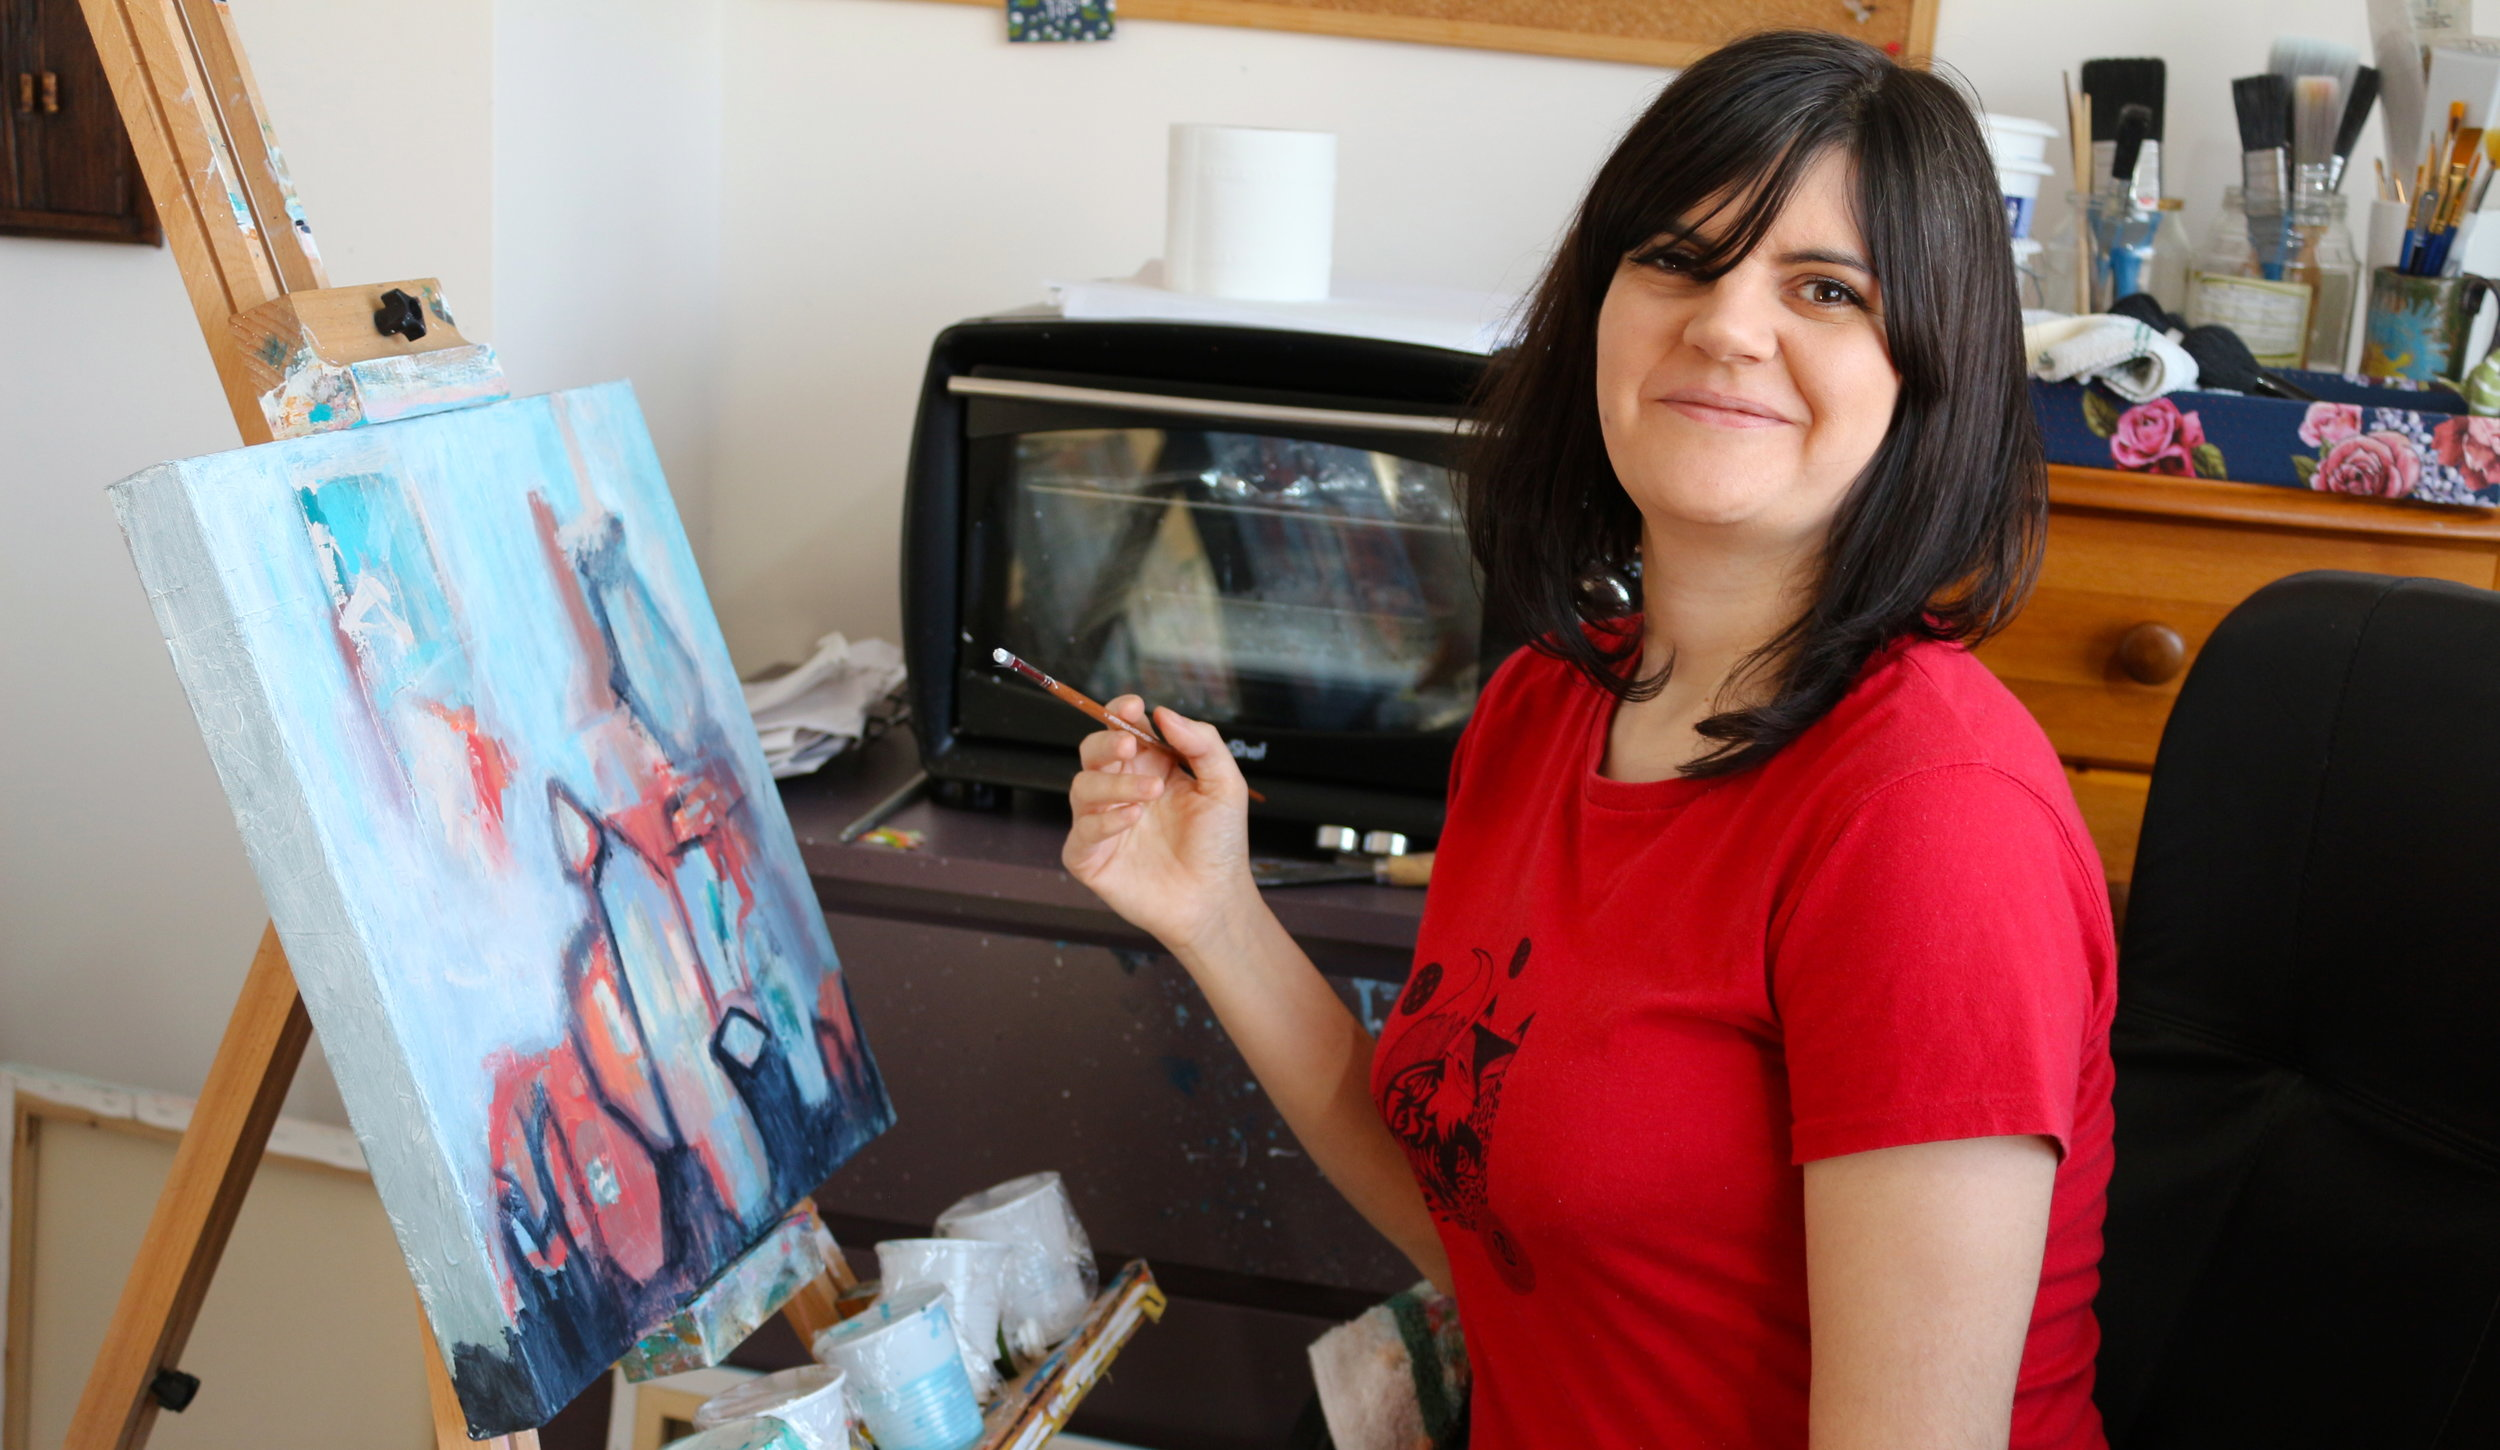 BBC interview with Jasmine Farrow abstract artist